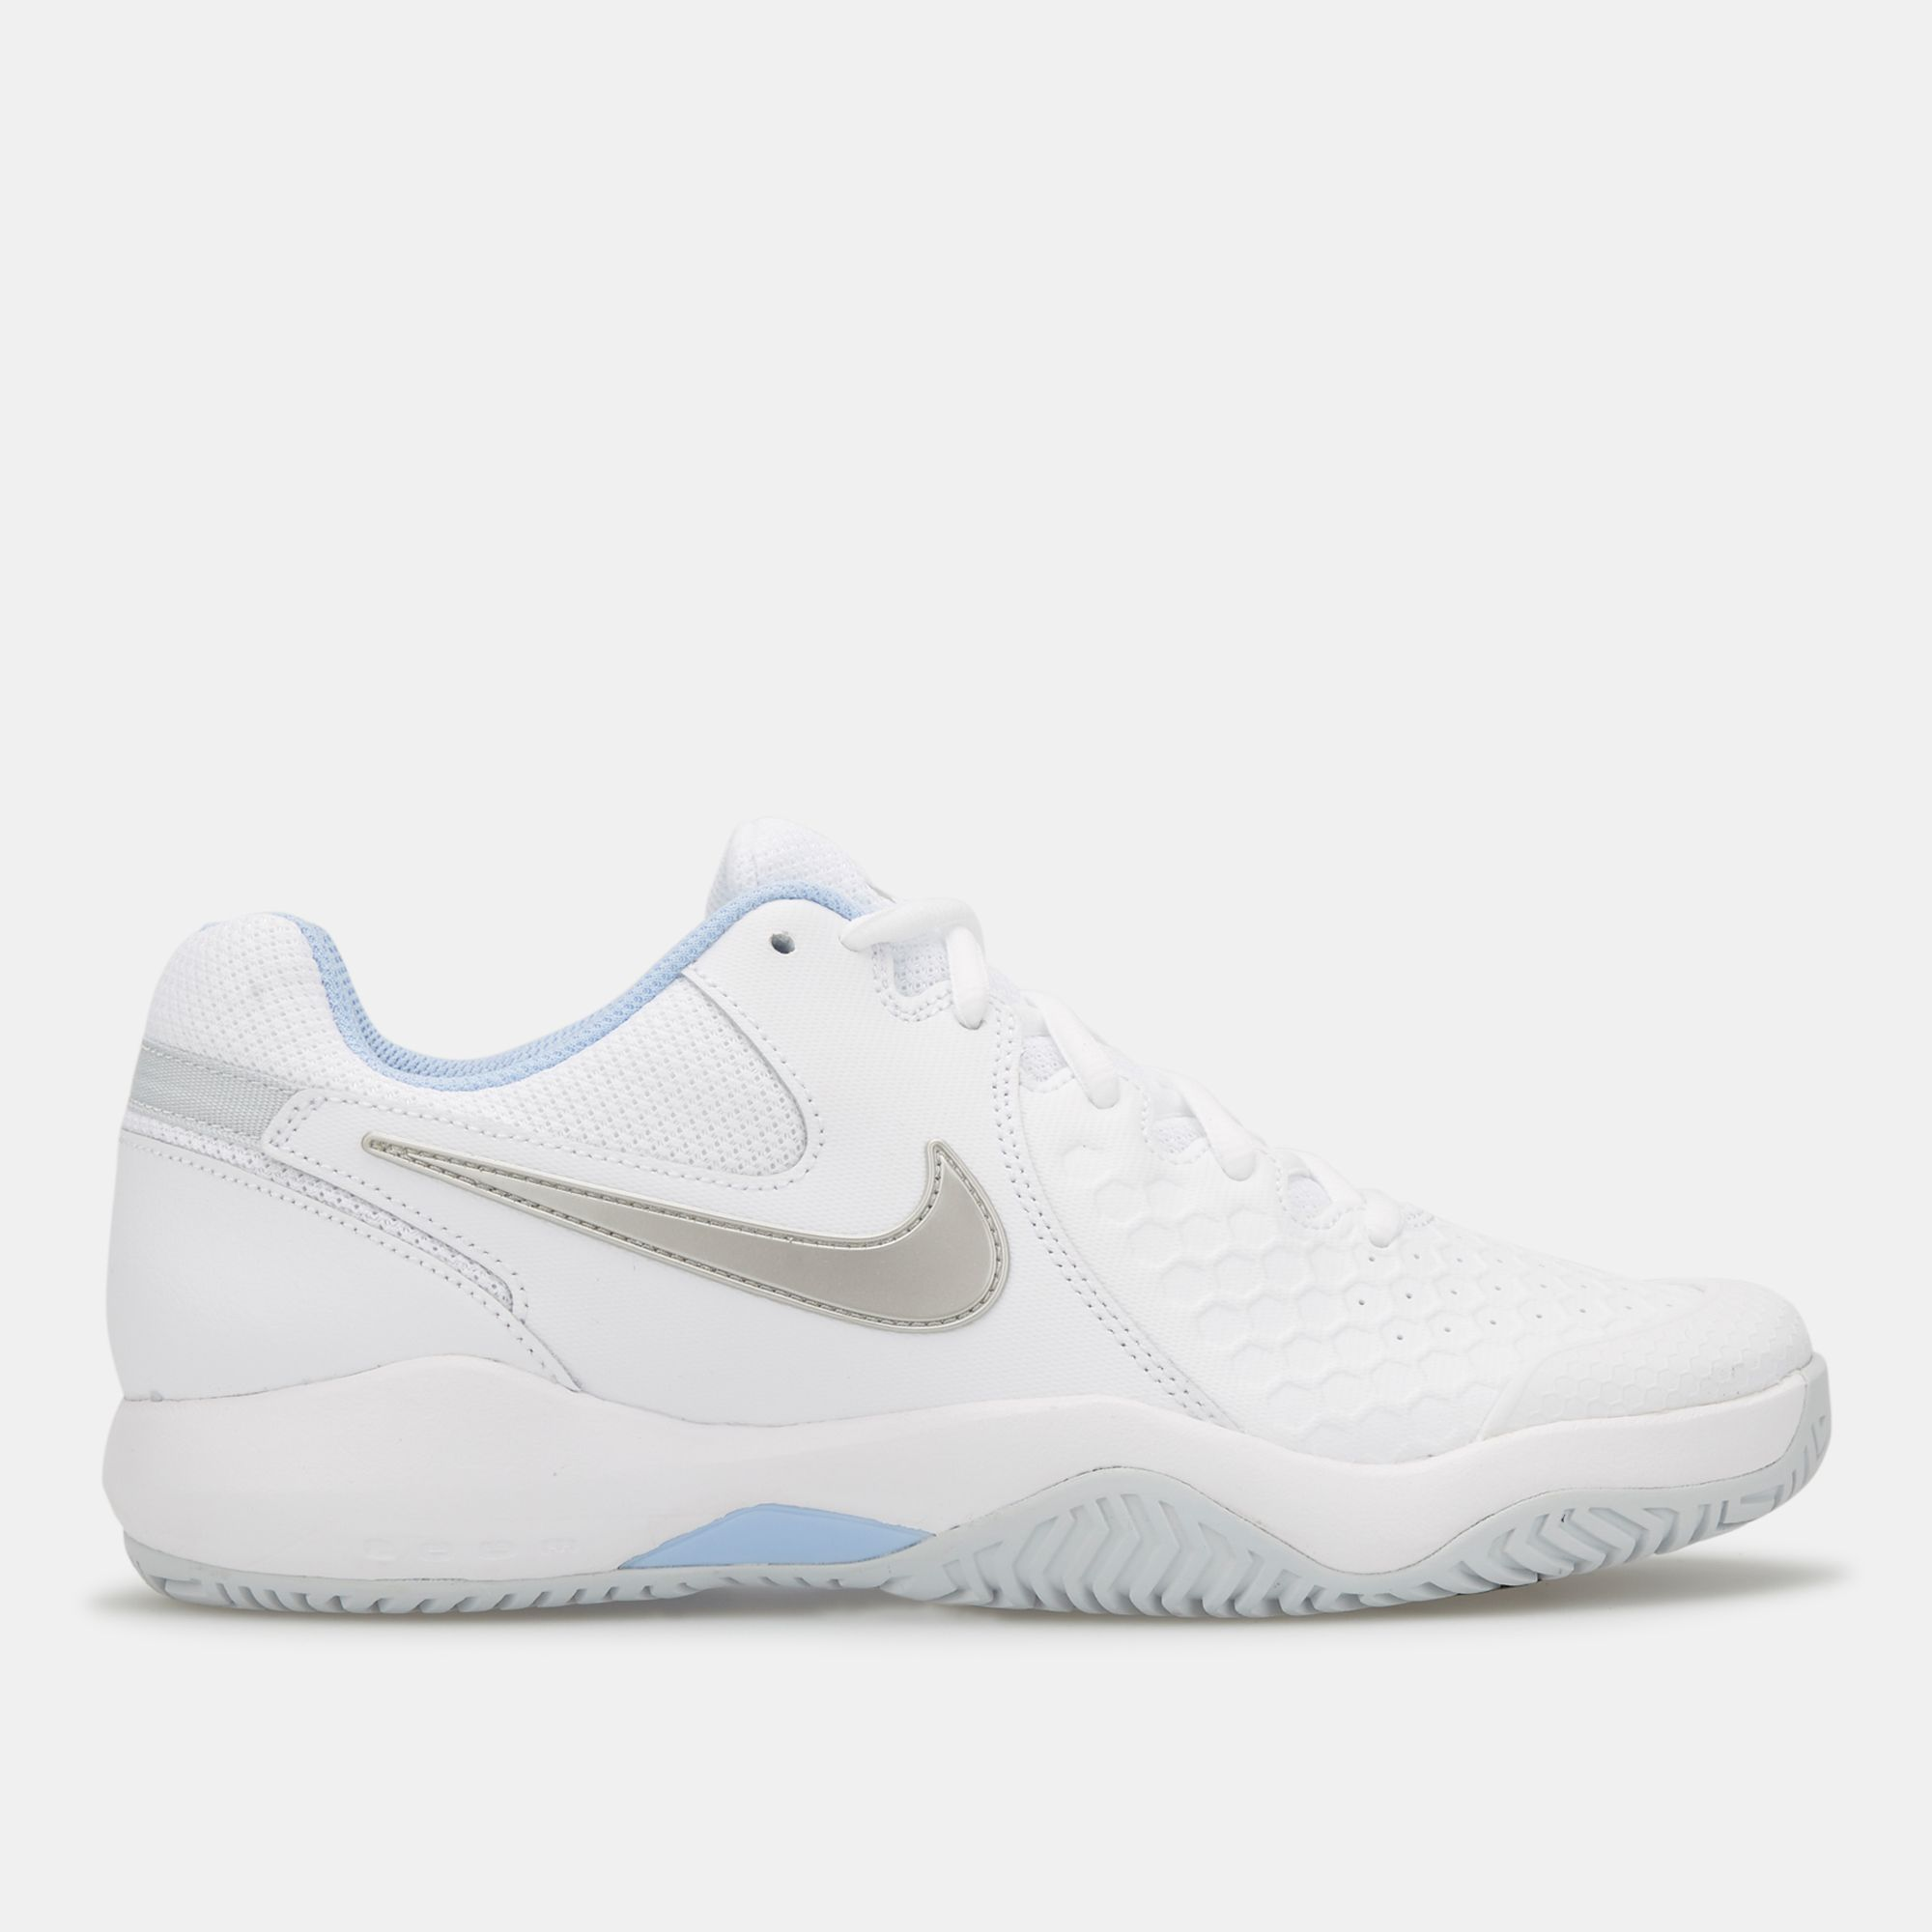 4cddc236d6be3 Nike Women s Court Air Zoom Resistance Tennis Shoe